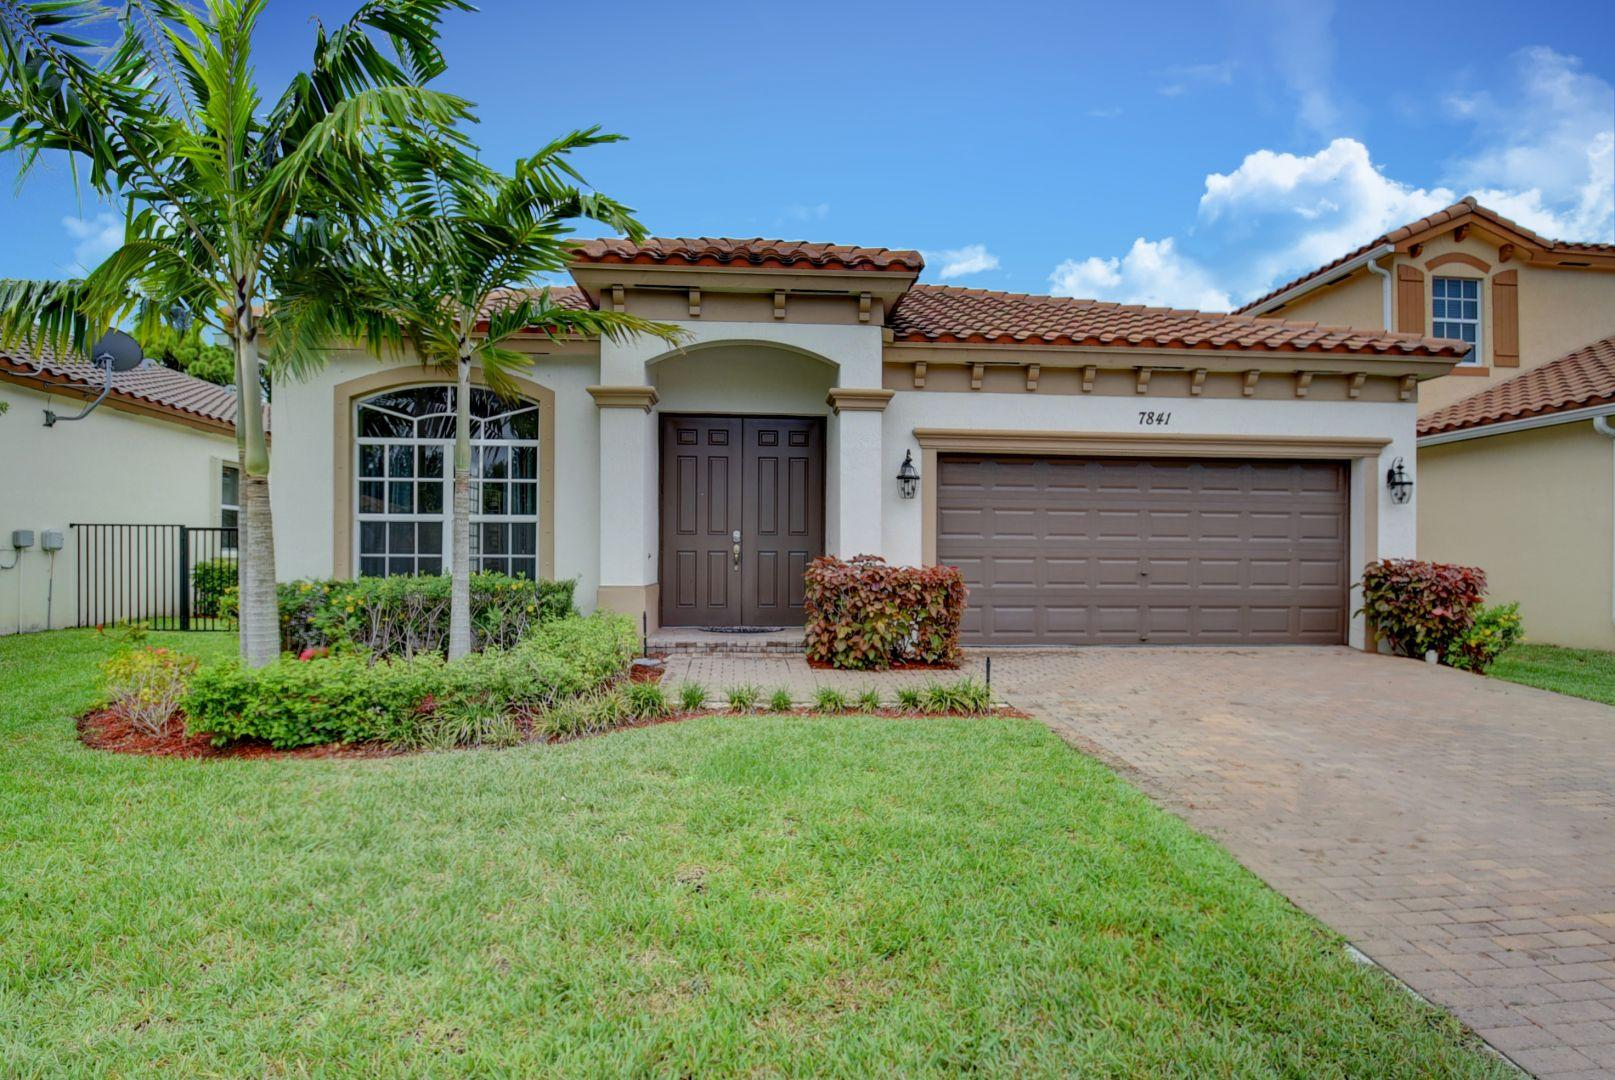 Photo of 7841 Patriot Street, Lake Worth, FL 33463